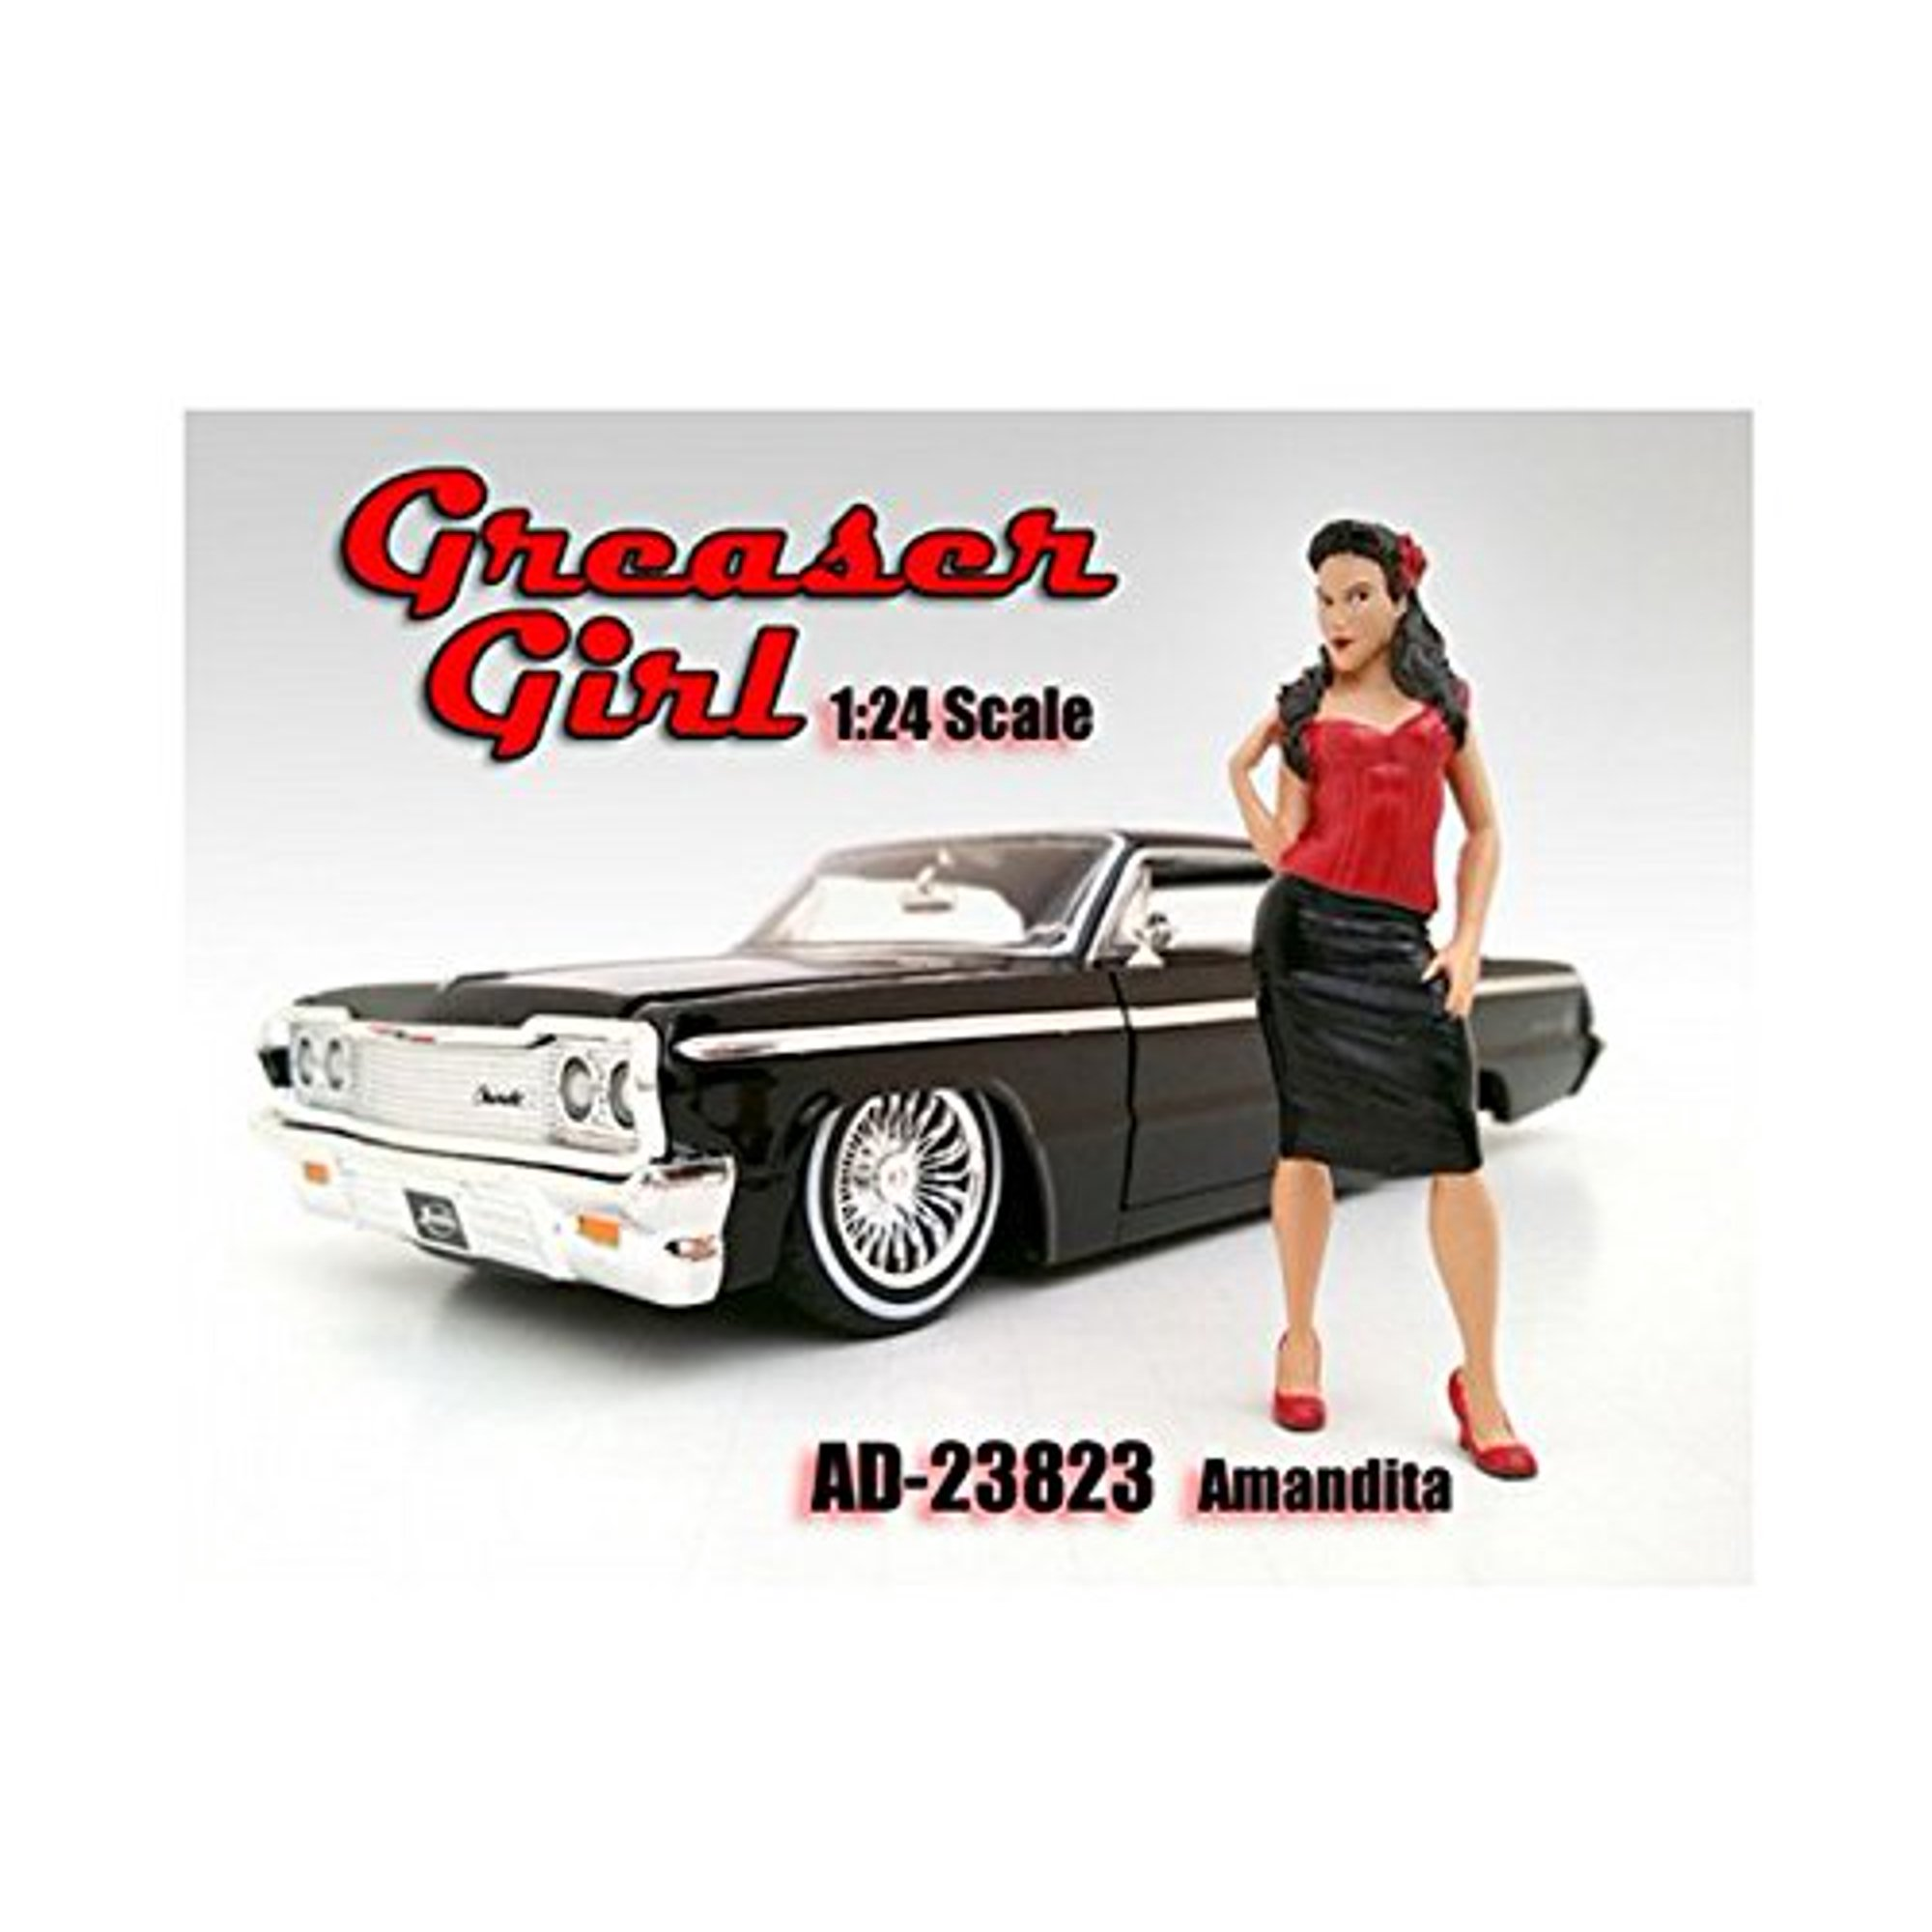 Greaser Girl Amandita Figurine / Figure For 1:24 Models by